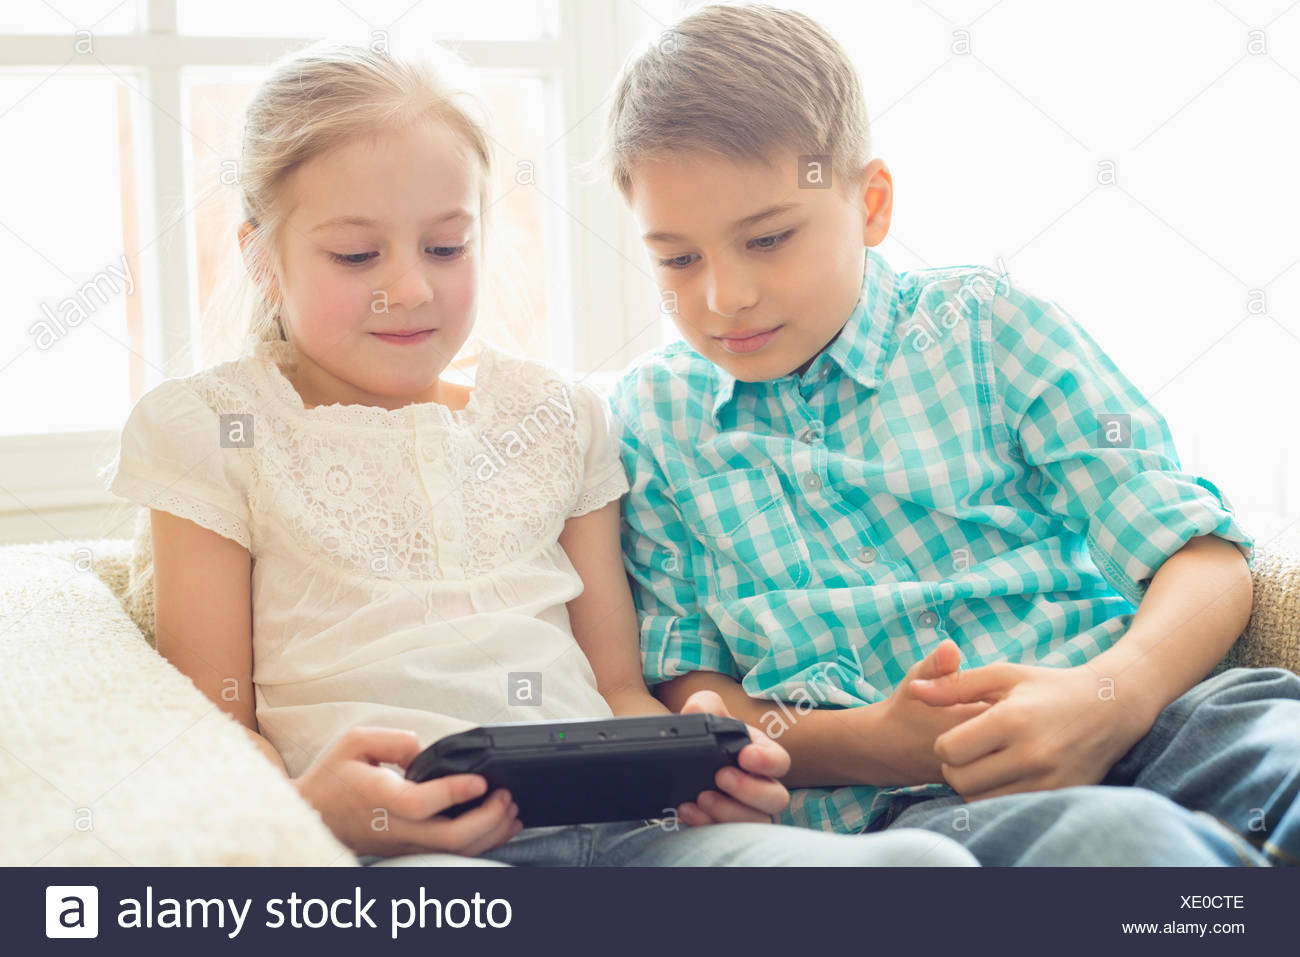 Siblings playing hand-held video game at home - Stock Image